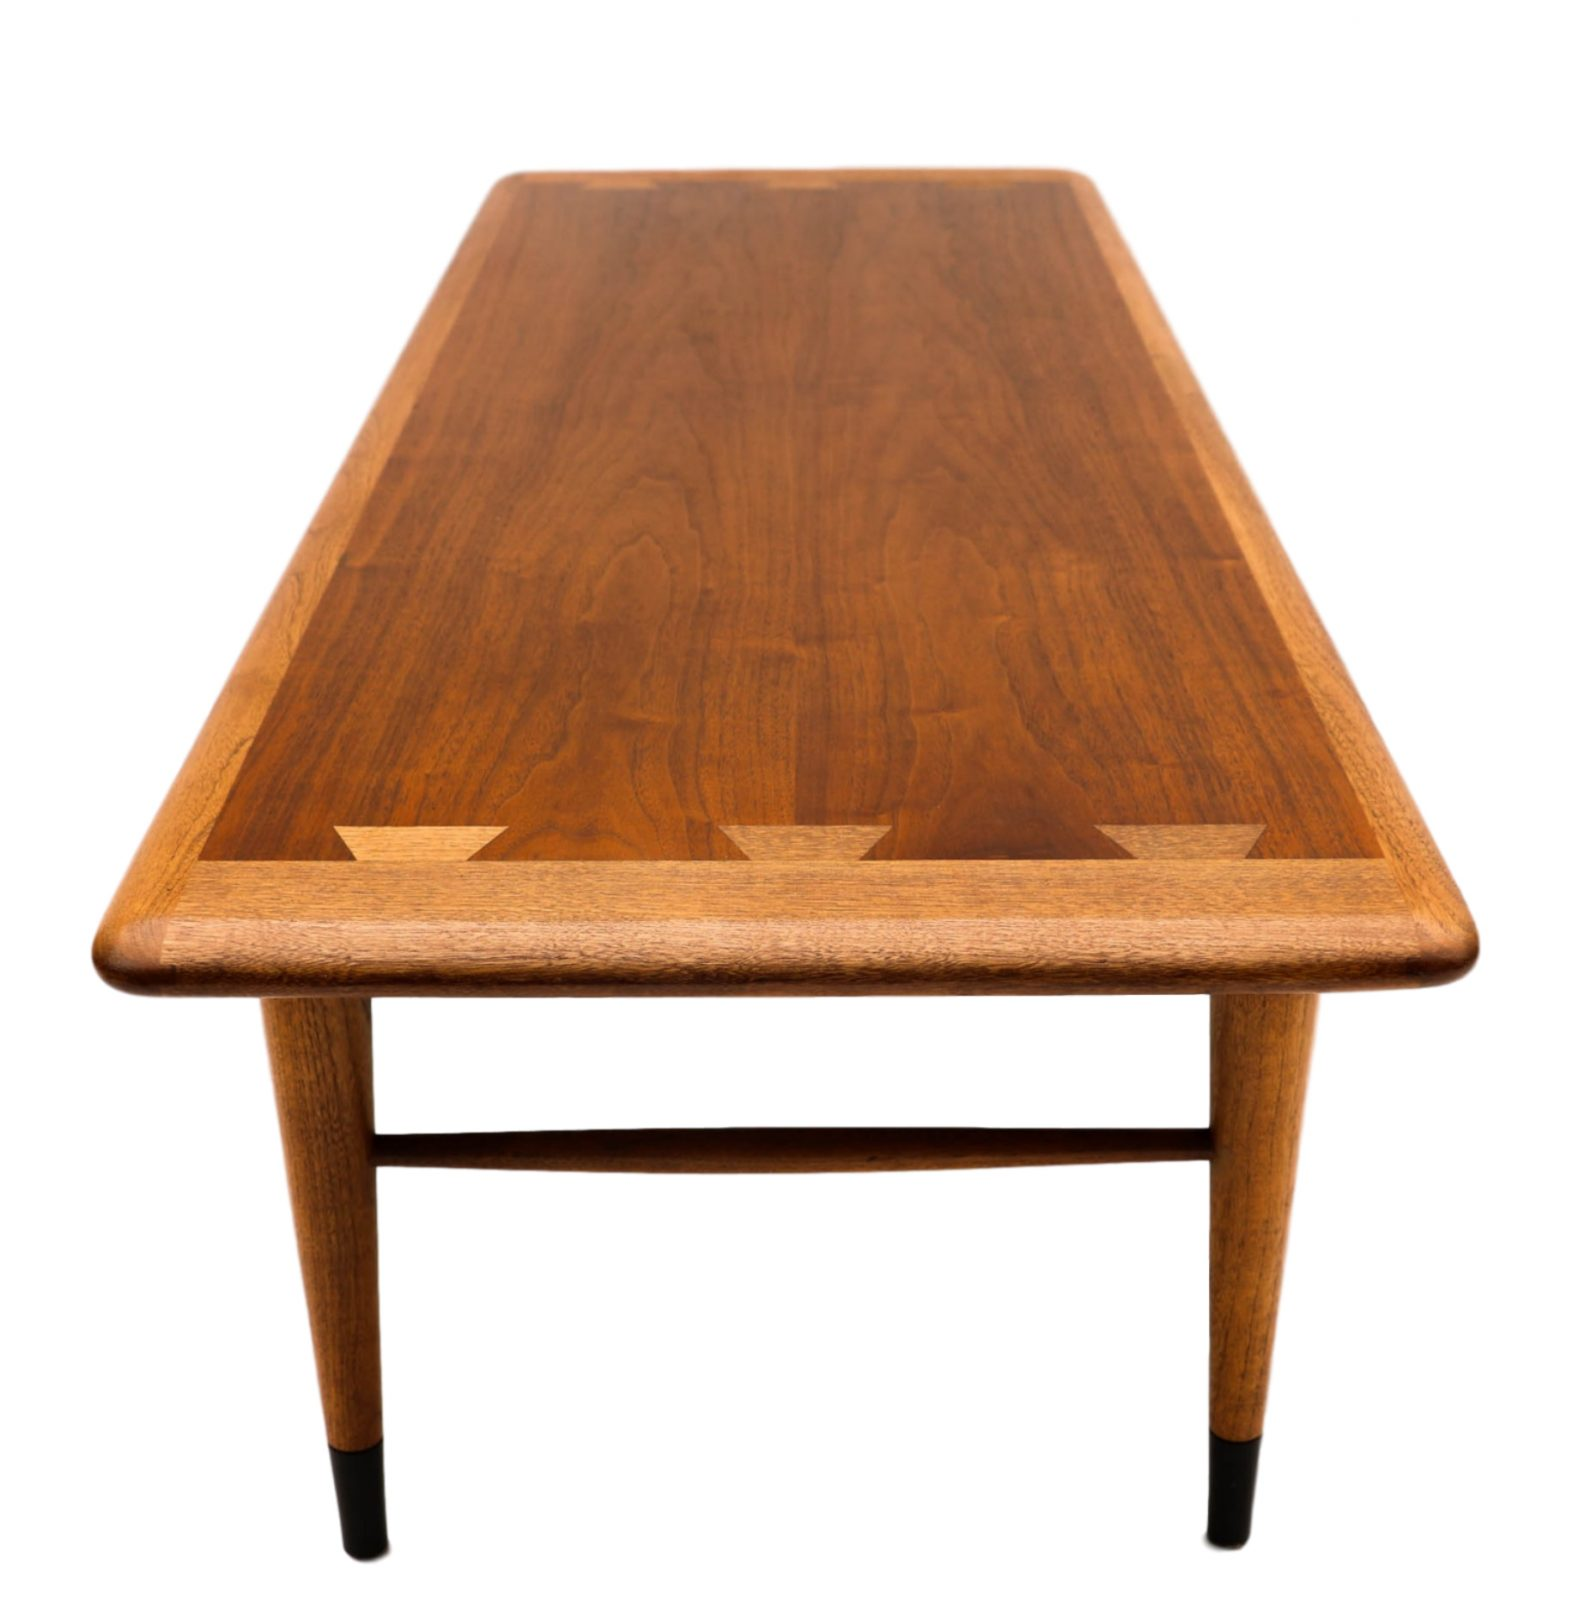 mid century modern Big, luxurious and versatile make up the characteristics of the conan dining table a stunning sunburst wood veneer top adds glamour while its dynamic centered leg.